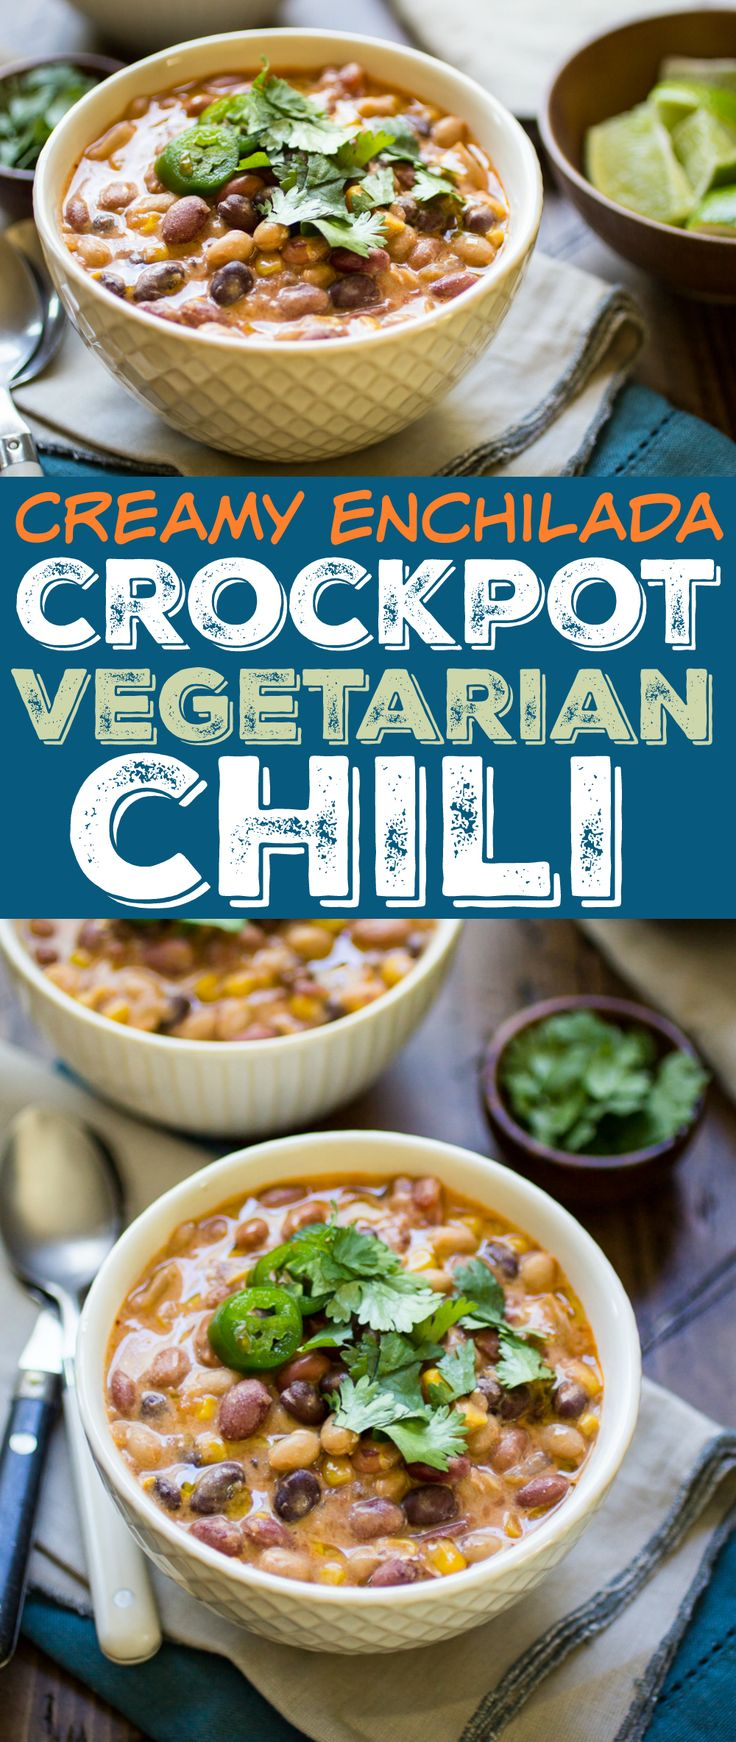 This creamy chili is the perfect vegetarian comfort food! Enchilada sauce and chipotle peppers give it a bold, savory flavor. Made entirely in the slow cooker, this smoky bean chili is as easy as it is delicious.